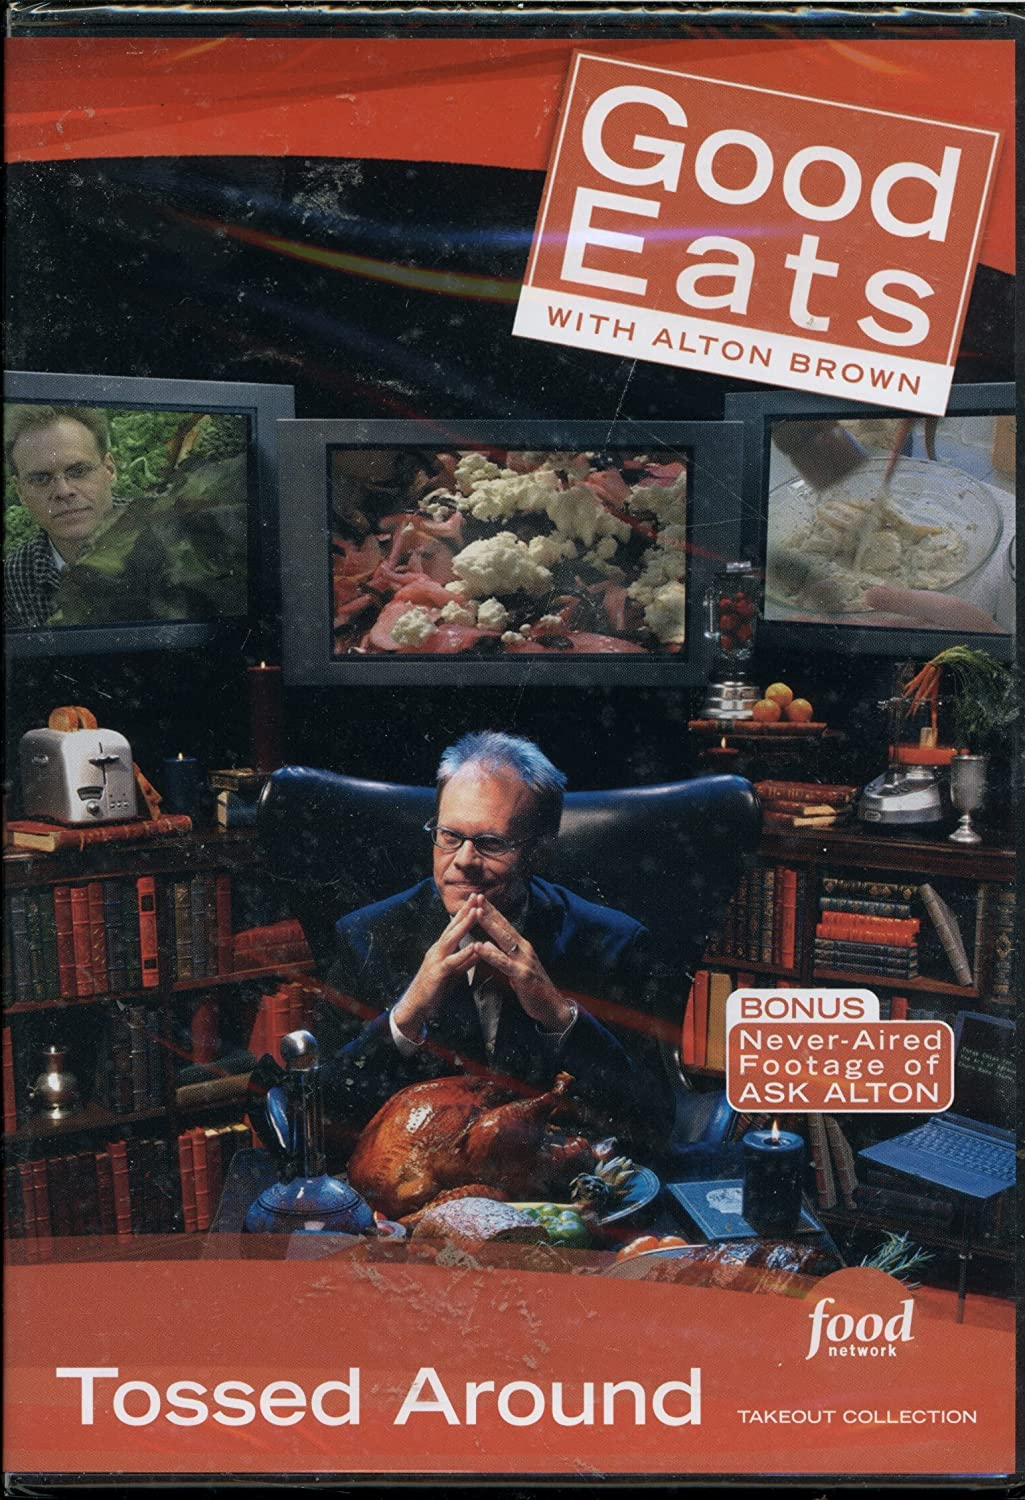 Food Network Takeout Collection DVD - Good Eats With Alton Brown - Tossed Around - Includes BONUS FOOTAGE Plus Salad Daze 1 Caesar / Salad Daze 2 - The Long Arm of Slaw / This Spud's For You - Potato Salad